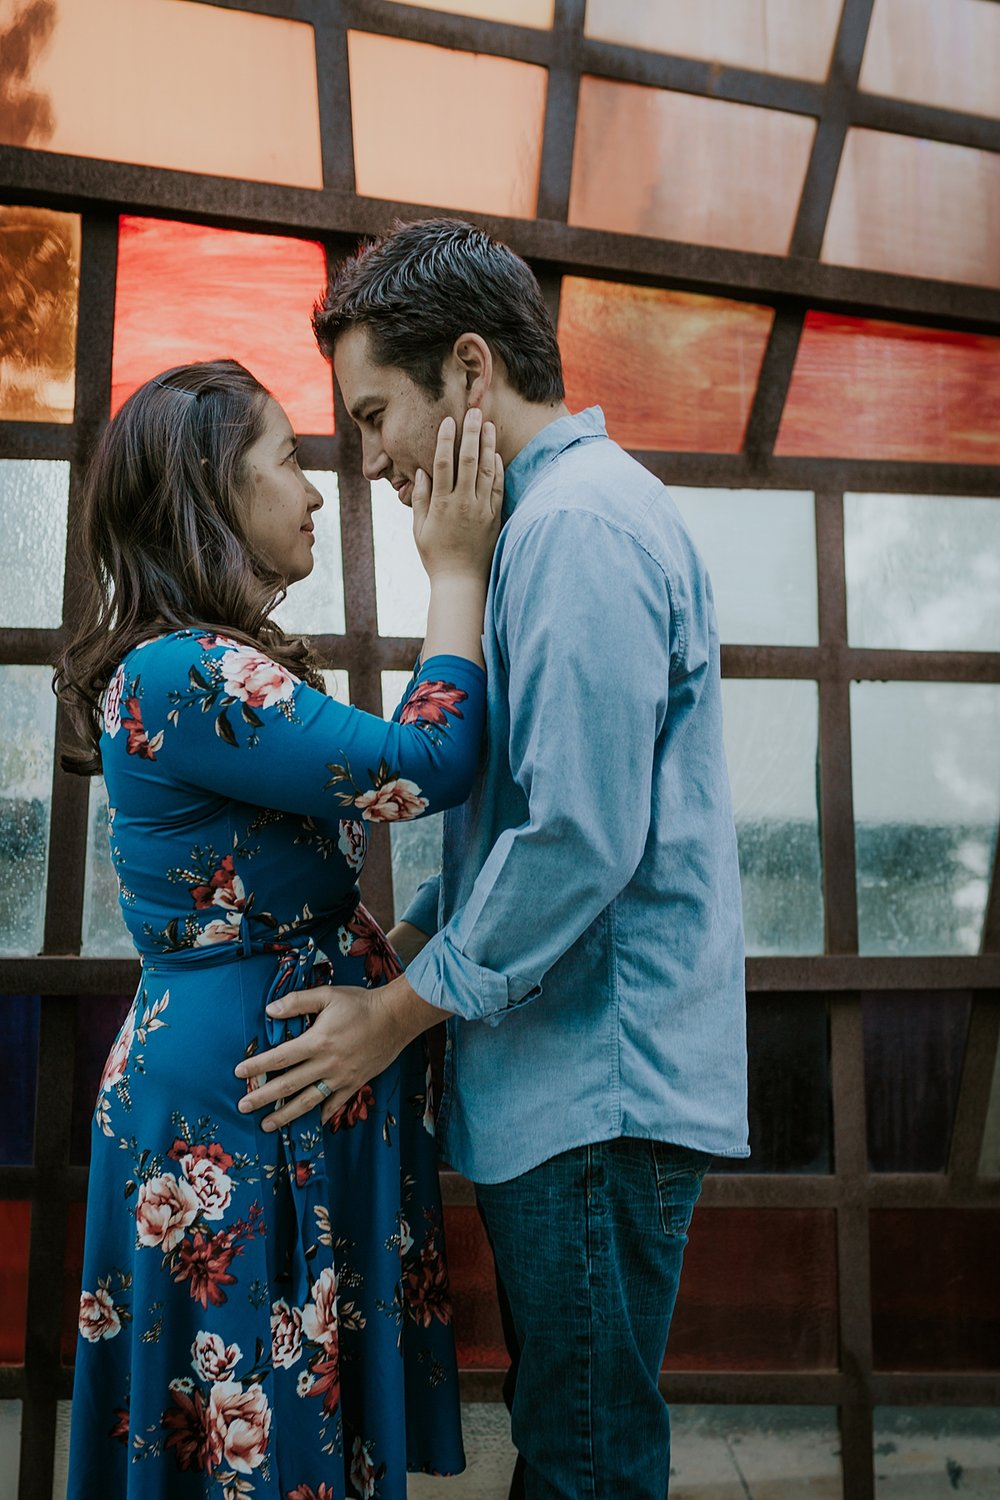 Orange County family photographer. photo of mom to be holding her husband's face in front of colorful glass mural during maternity photo shoot at Noguchi Garden Costa Mesa